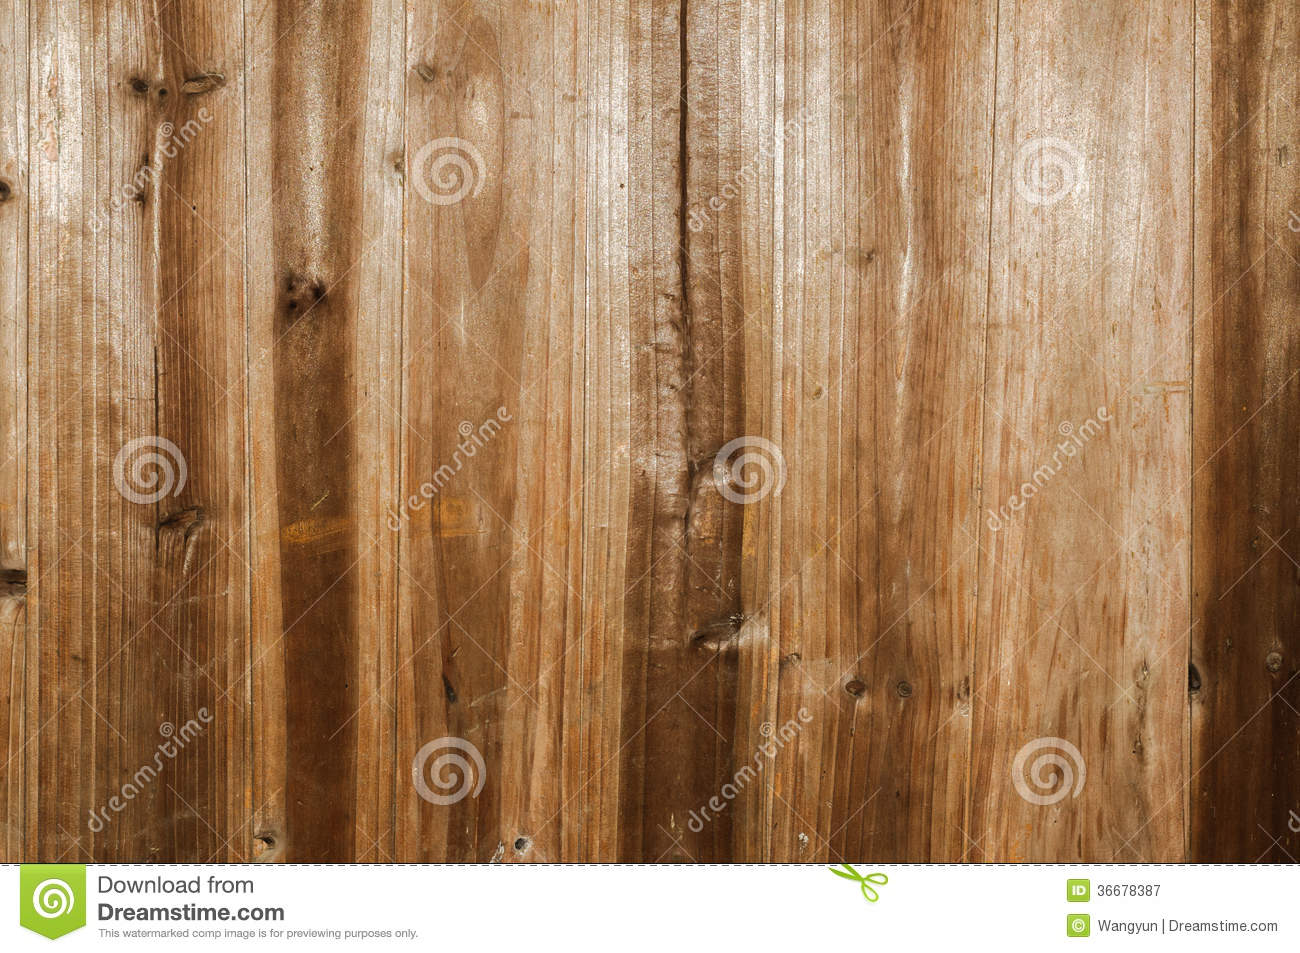 Distressed Old Wood Plank Boards Background Royalty Free